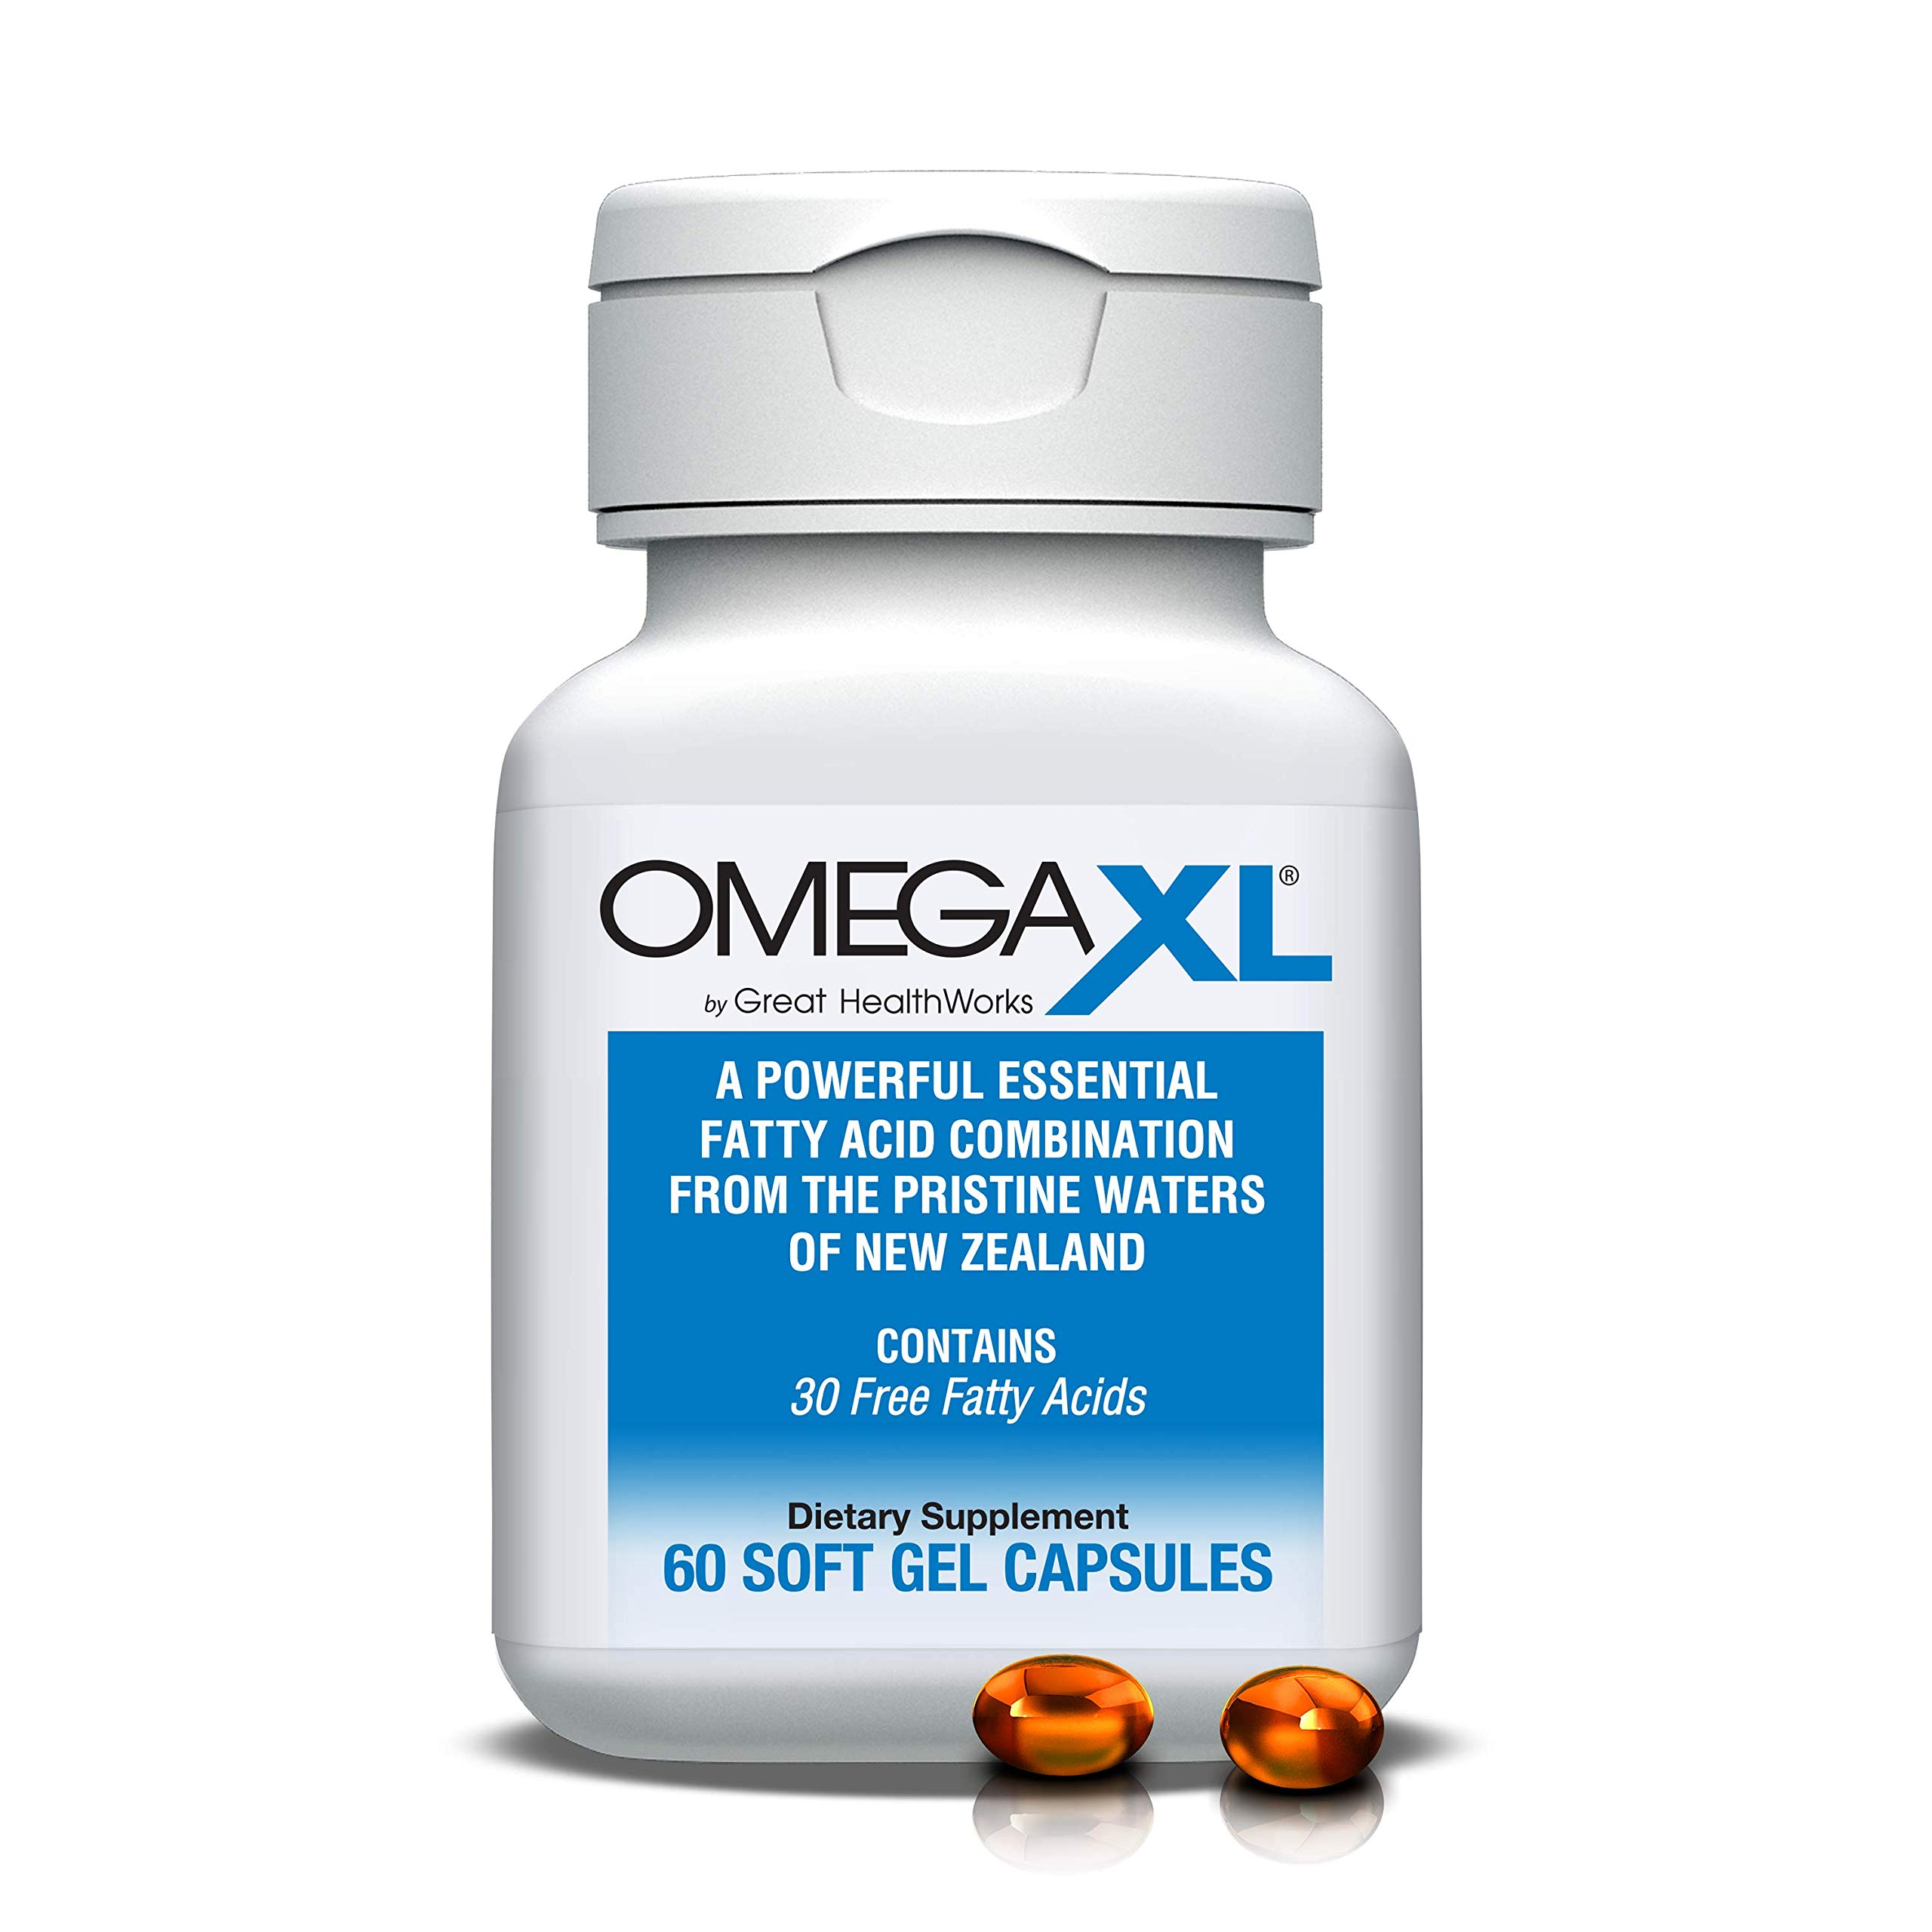 Omega XL 60 Capsules - Green Lipped Mussel New Zealand, Omega 3 Natural Joint Pain Relief & Inflammation Supplement by Omega XL®